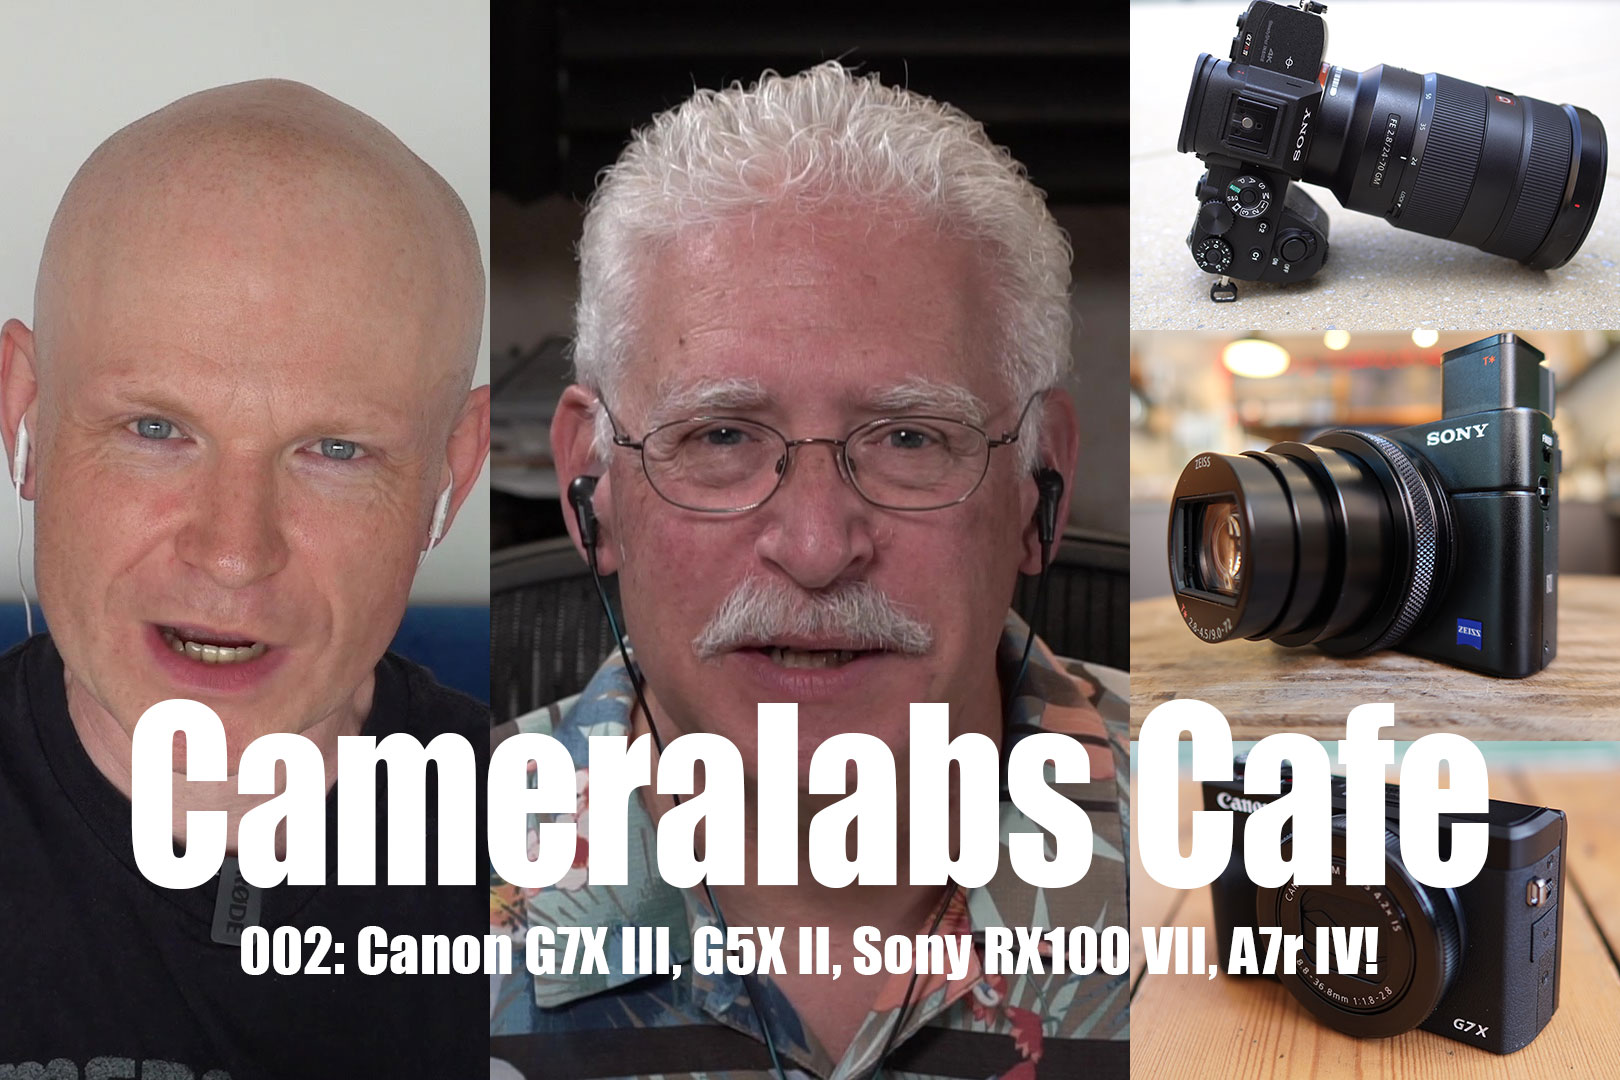 cameralabs-cafe-ep-2-featured